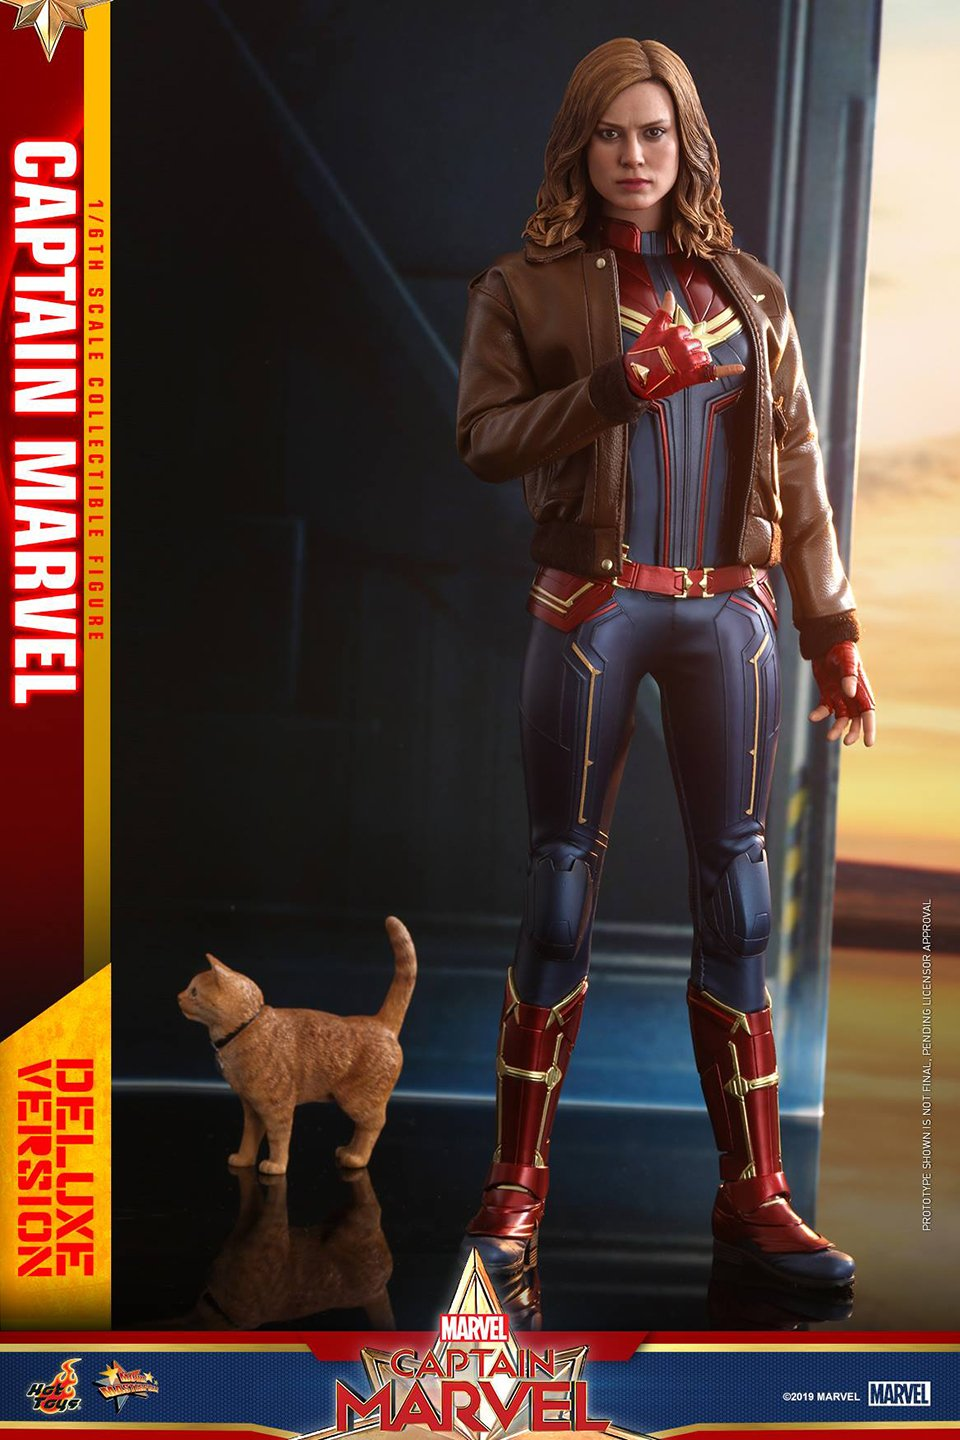 Check out Hot Toys' Action Figure of Brie Larson as Captain Marvel